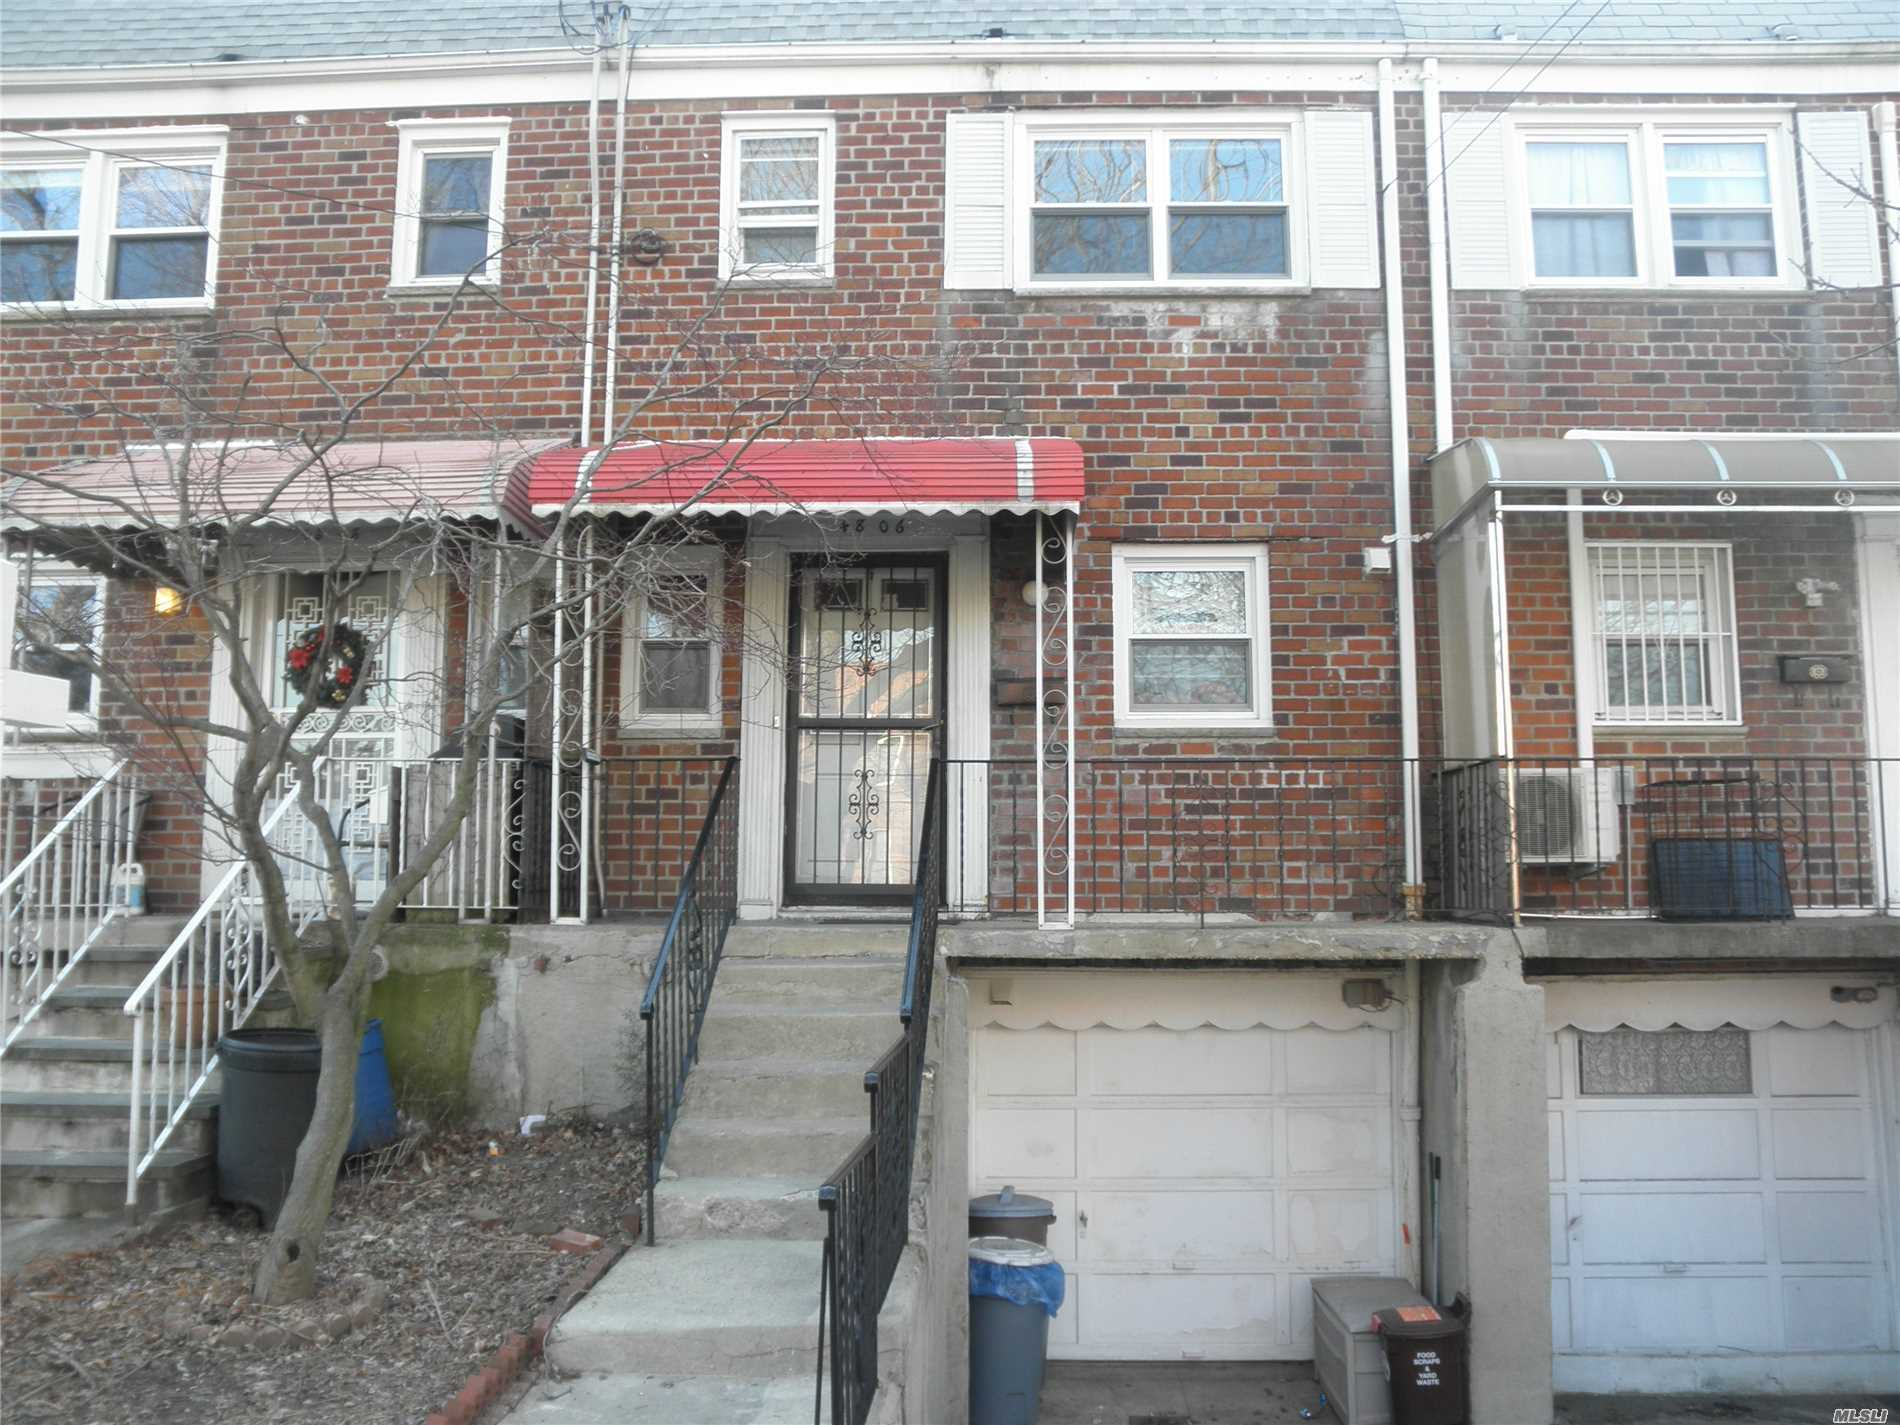 All Brick One Family House @ Prime Bayside Hills Location ! Nice Private Backyard . Walk To Lirr / Schools : P.S.376 / J.H.S.158 / Cardozo H.S . Local Buses Q27/31./ Near Shops ./ Major Hwys. / Close To Everything .